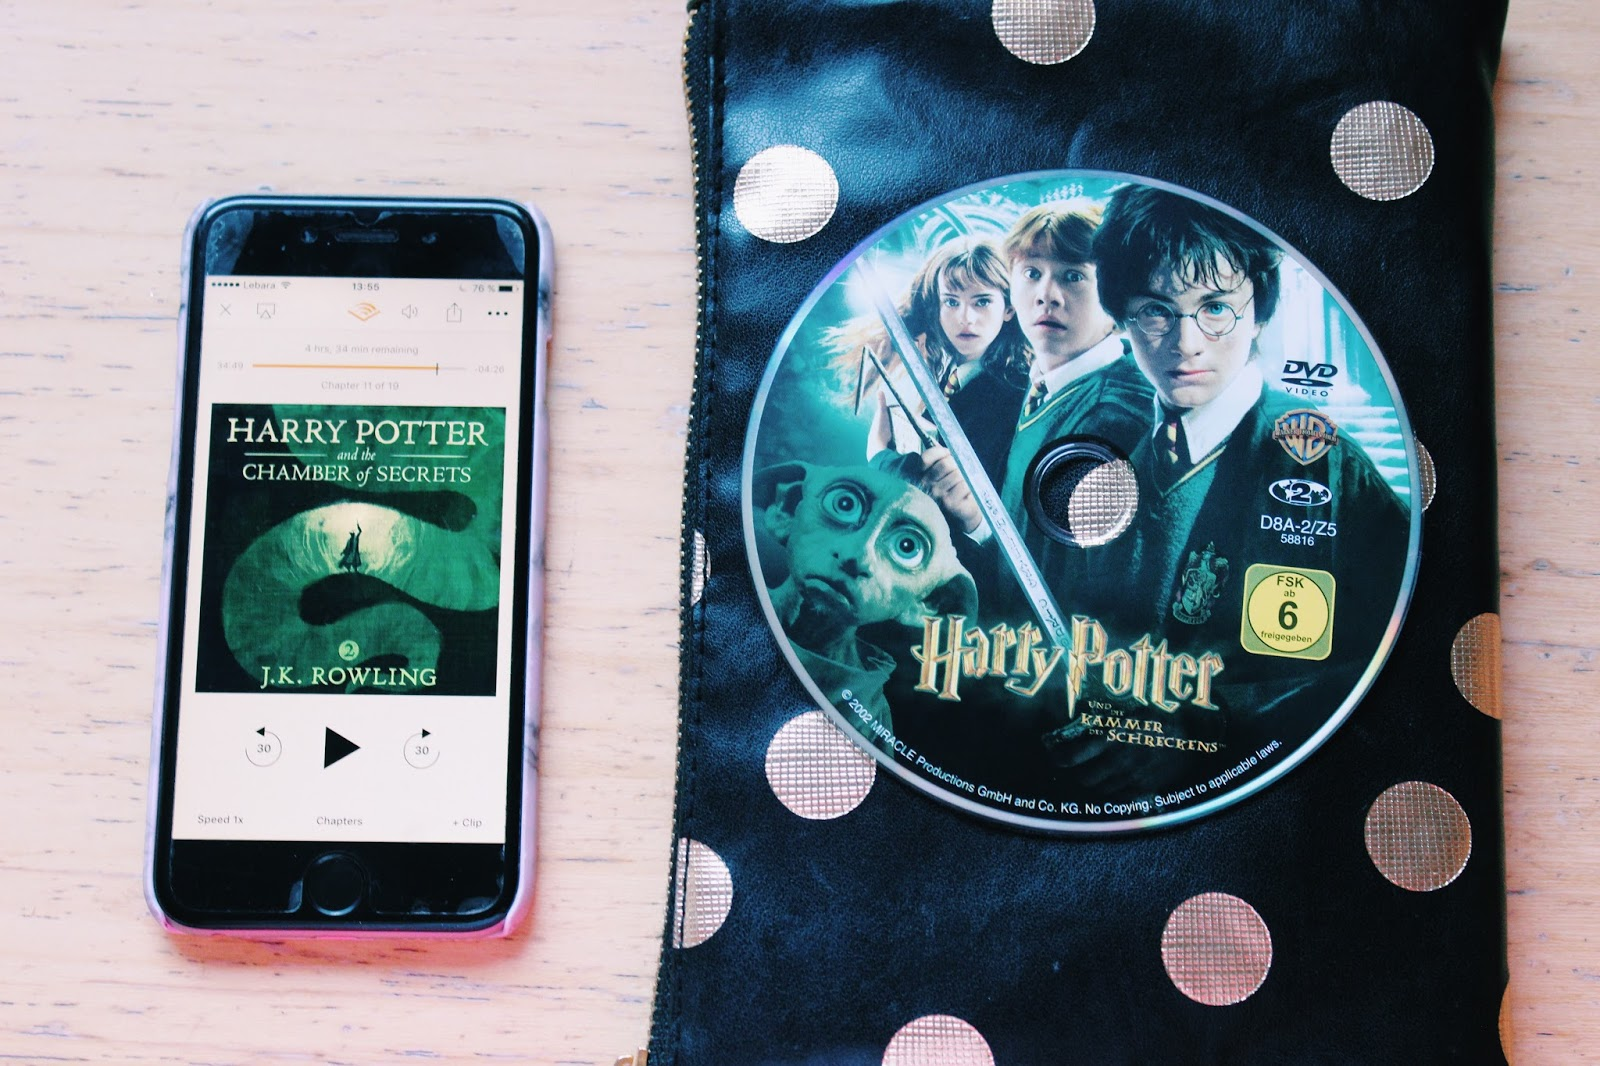 Harry Potter and the Chamber of Secrets Audible and DVD